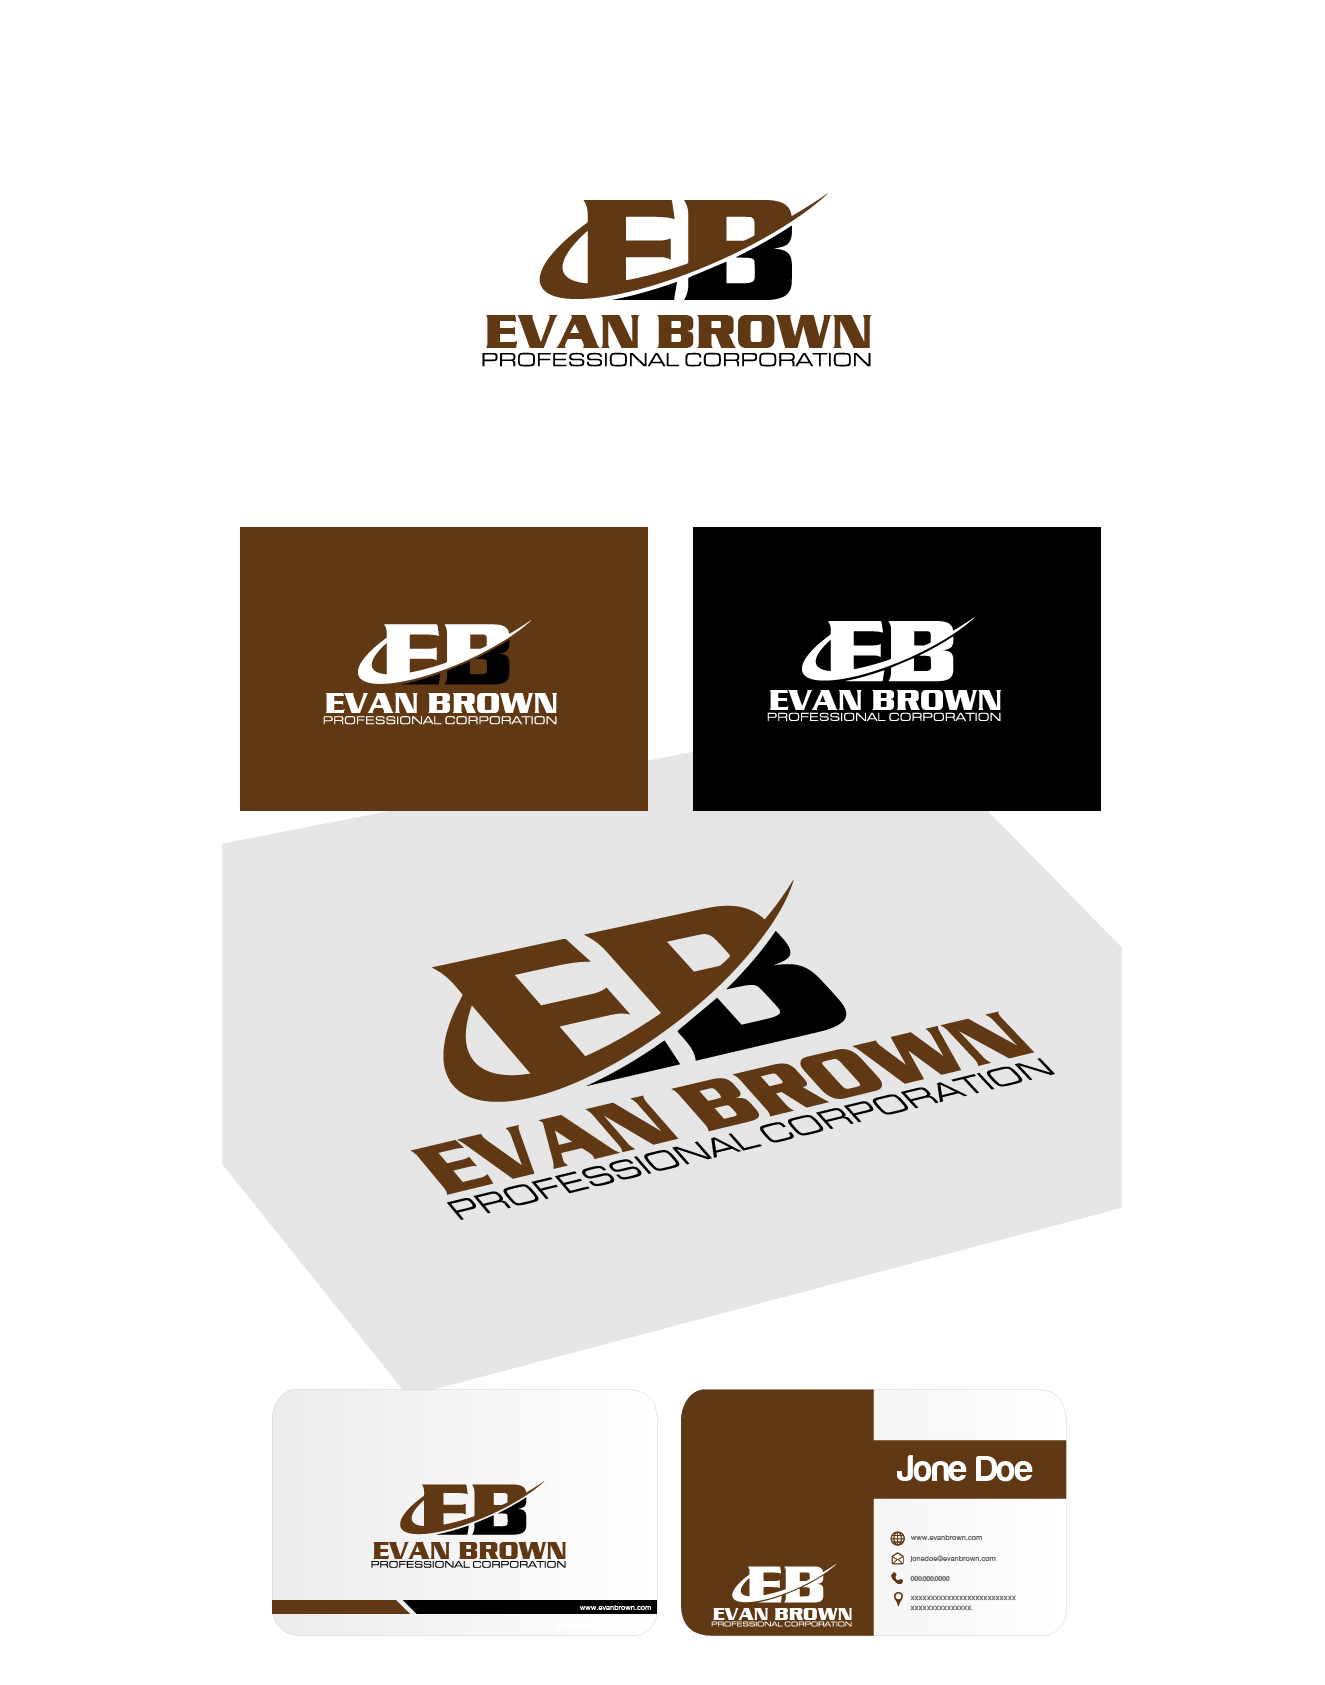 Logo Design by Private User - Entry No. 179 in the Logo Design Contest Inspiring Logo Design for Evan Brown Professional Corporation.